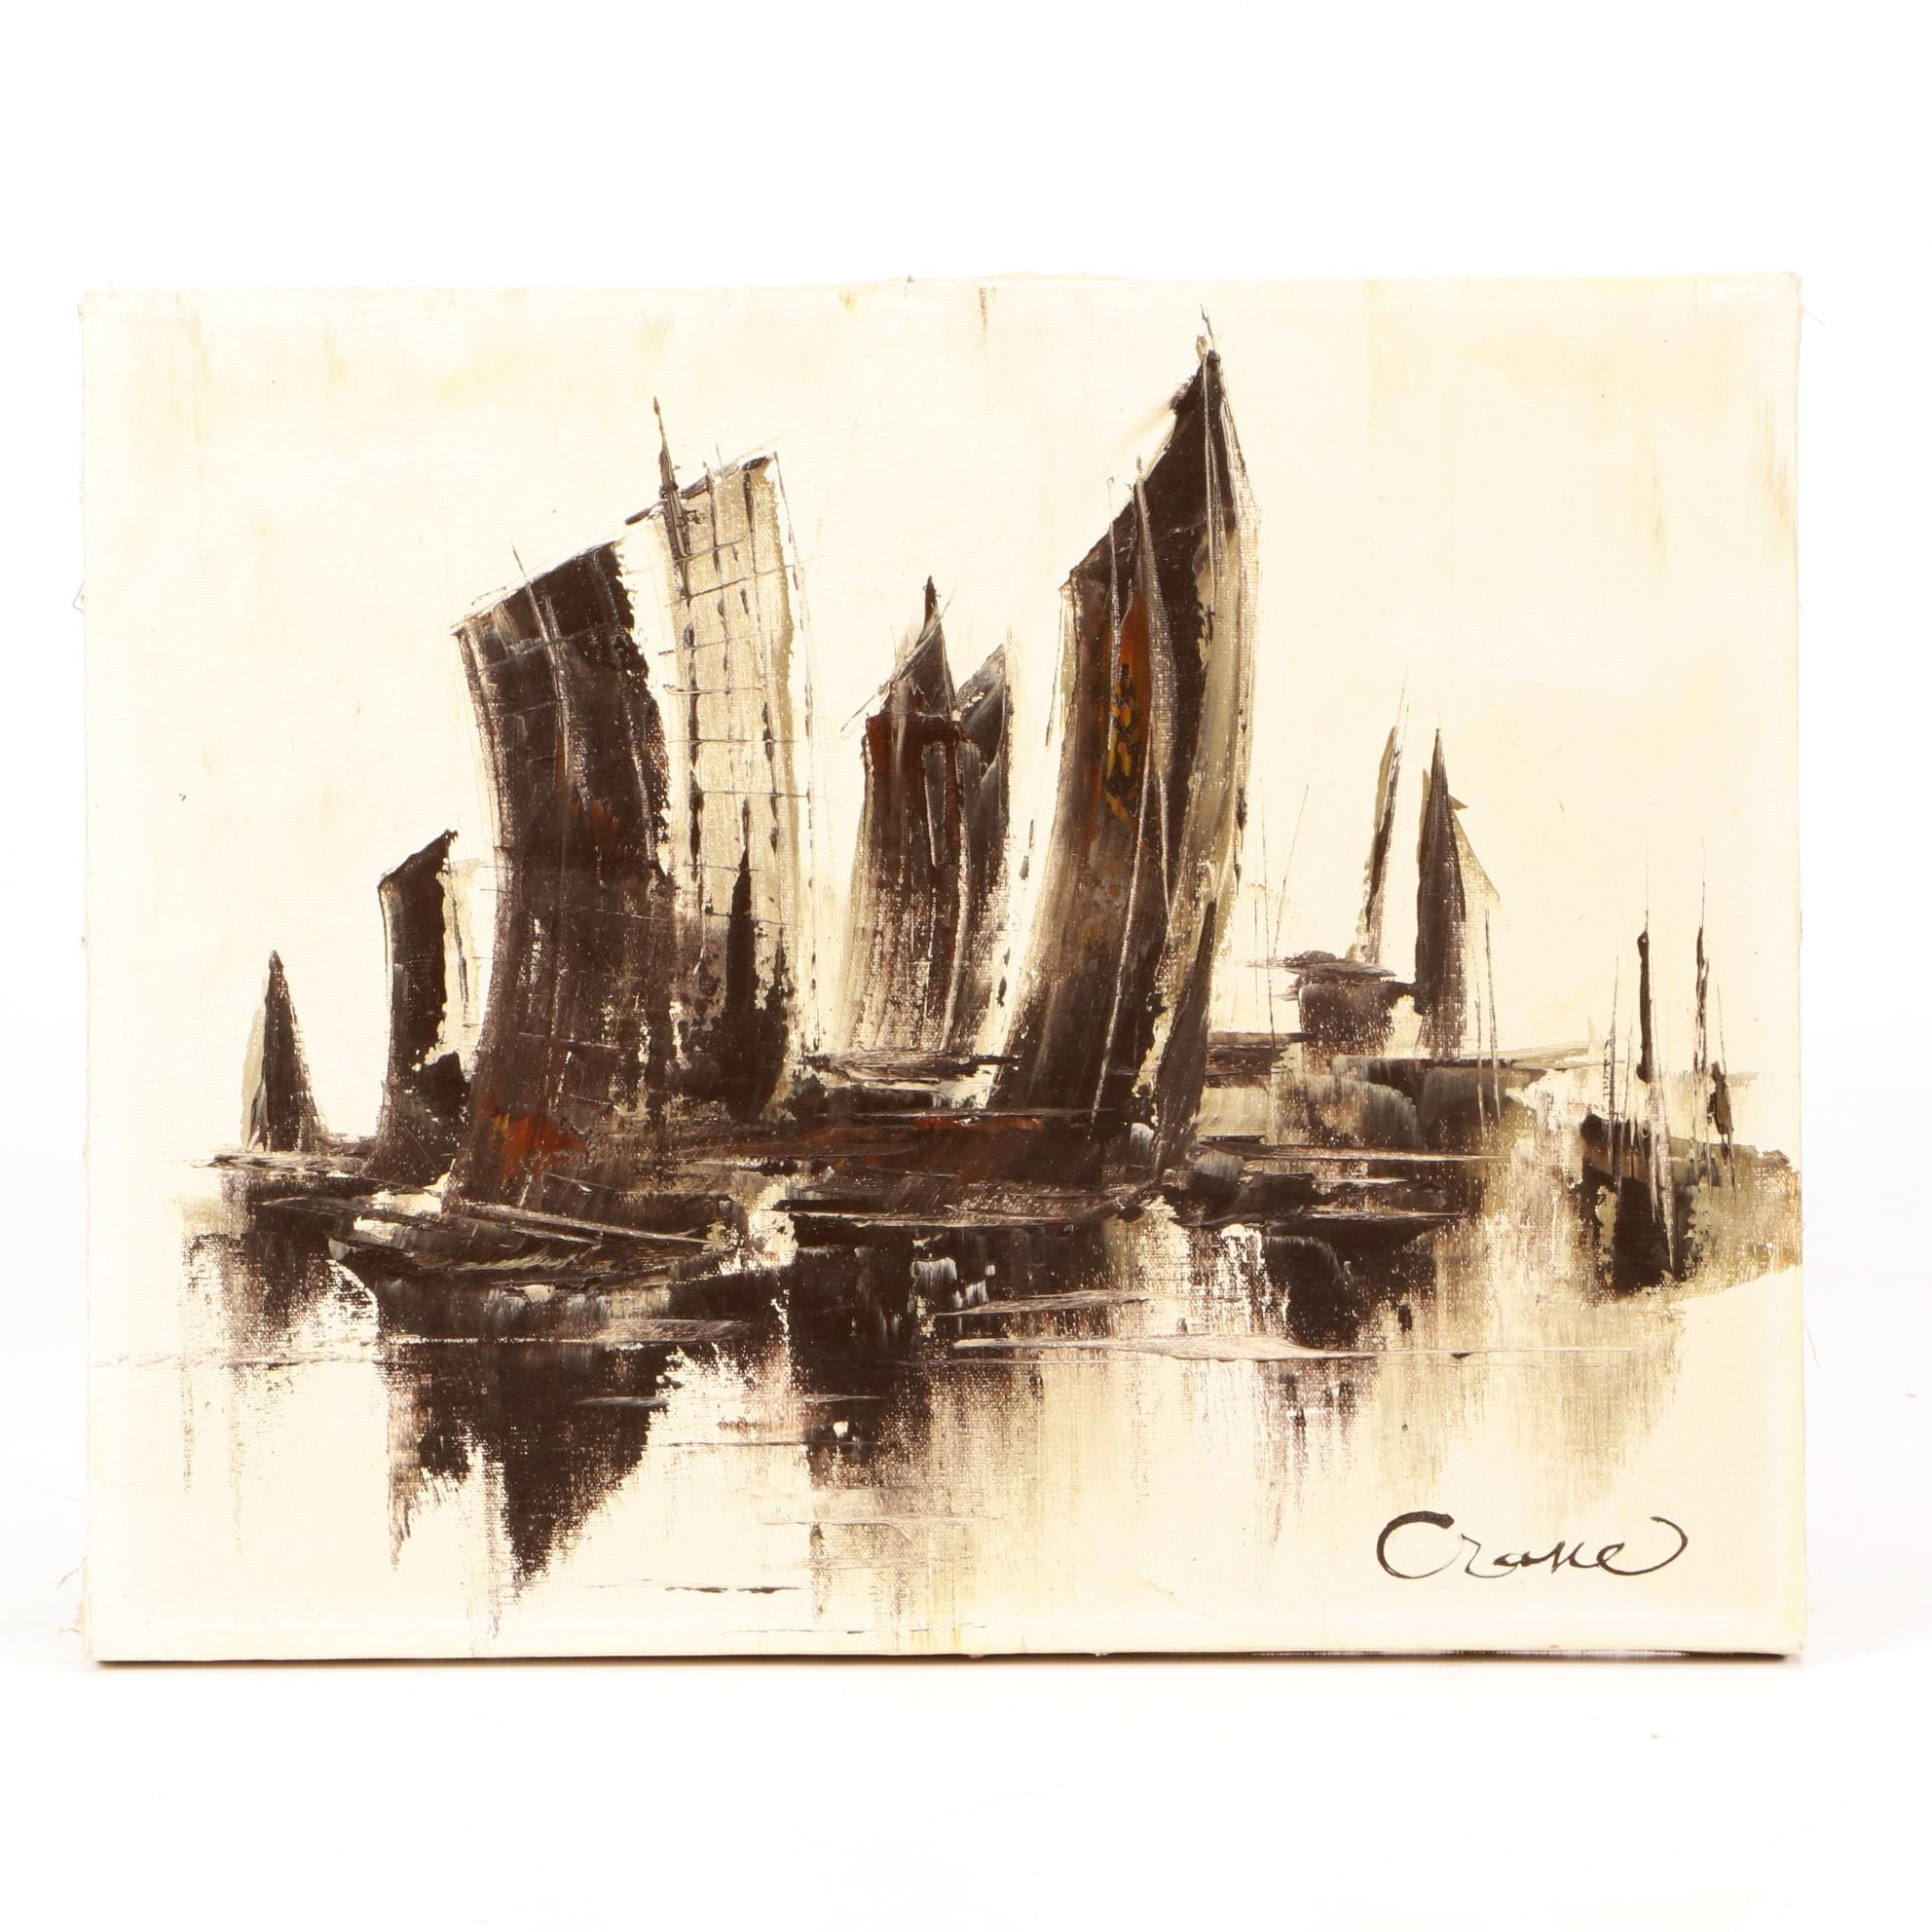 Crane Abstract Oil Painting of Ships in Harbor